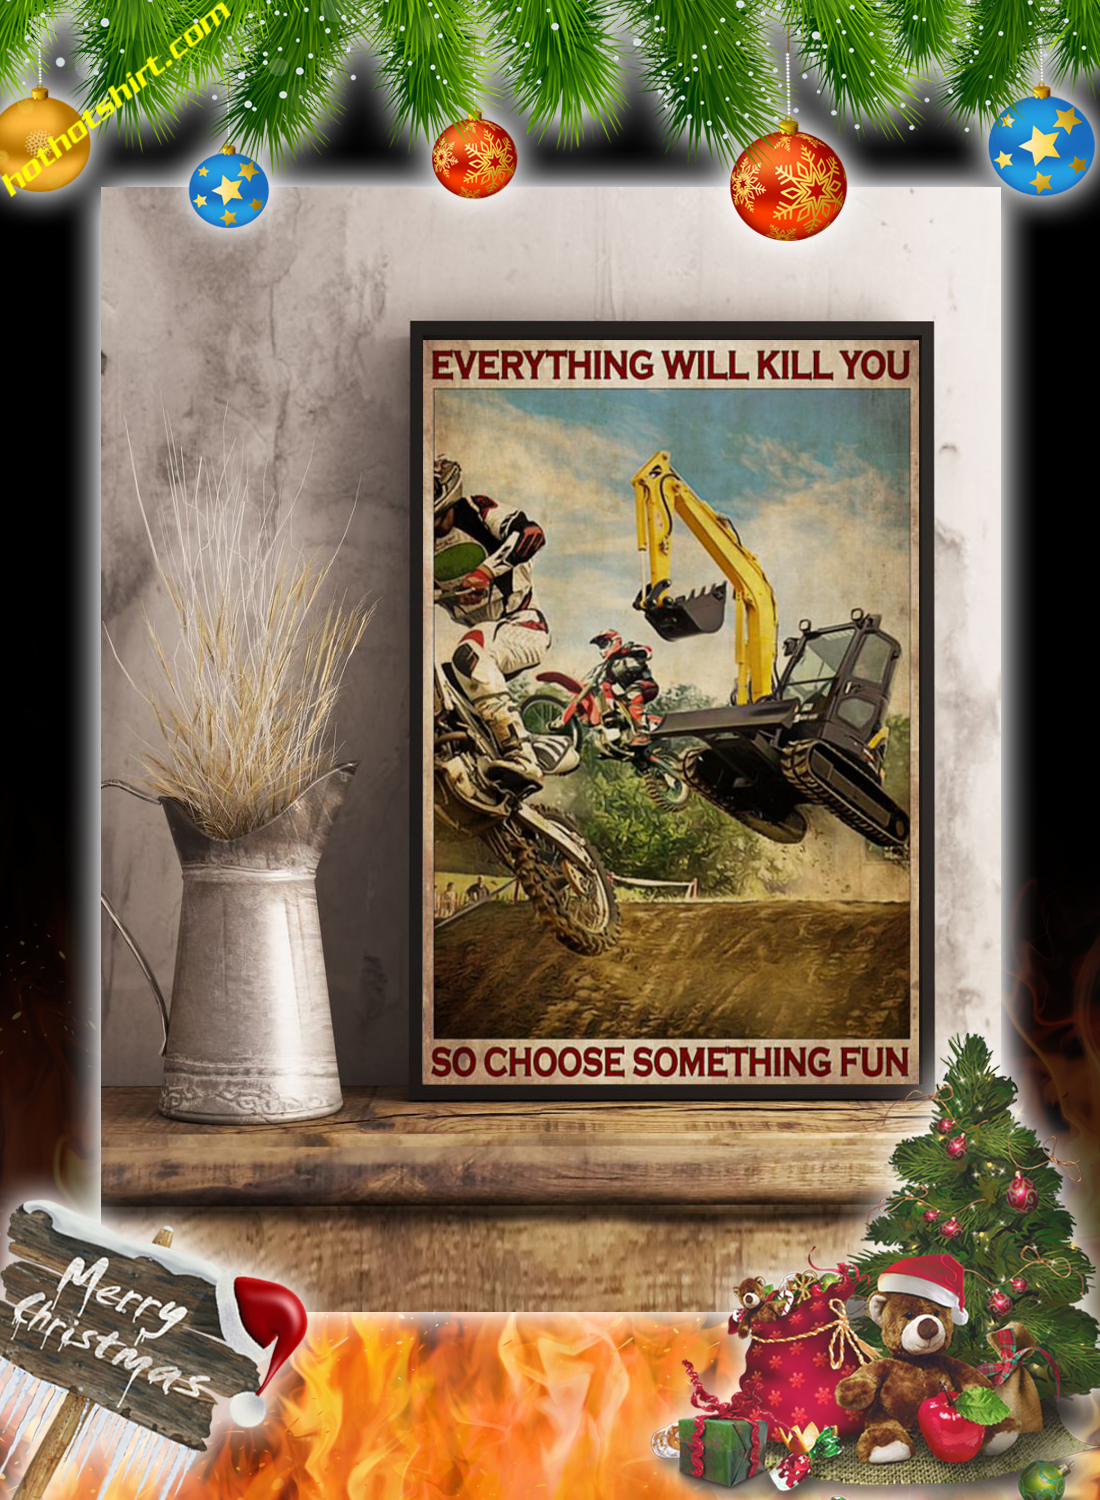 Motocross and excavator everything will kill you so choose something fun poster 3